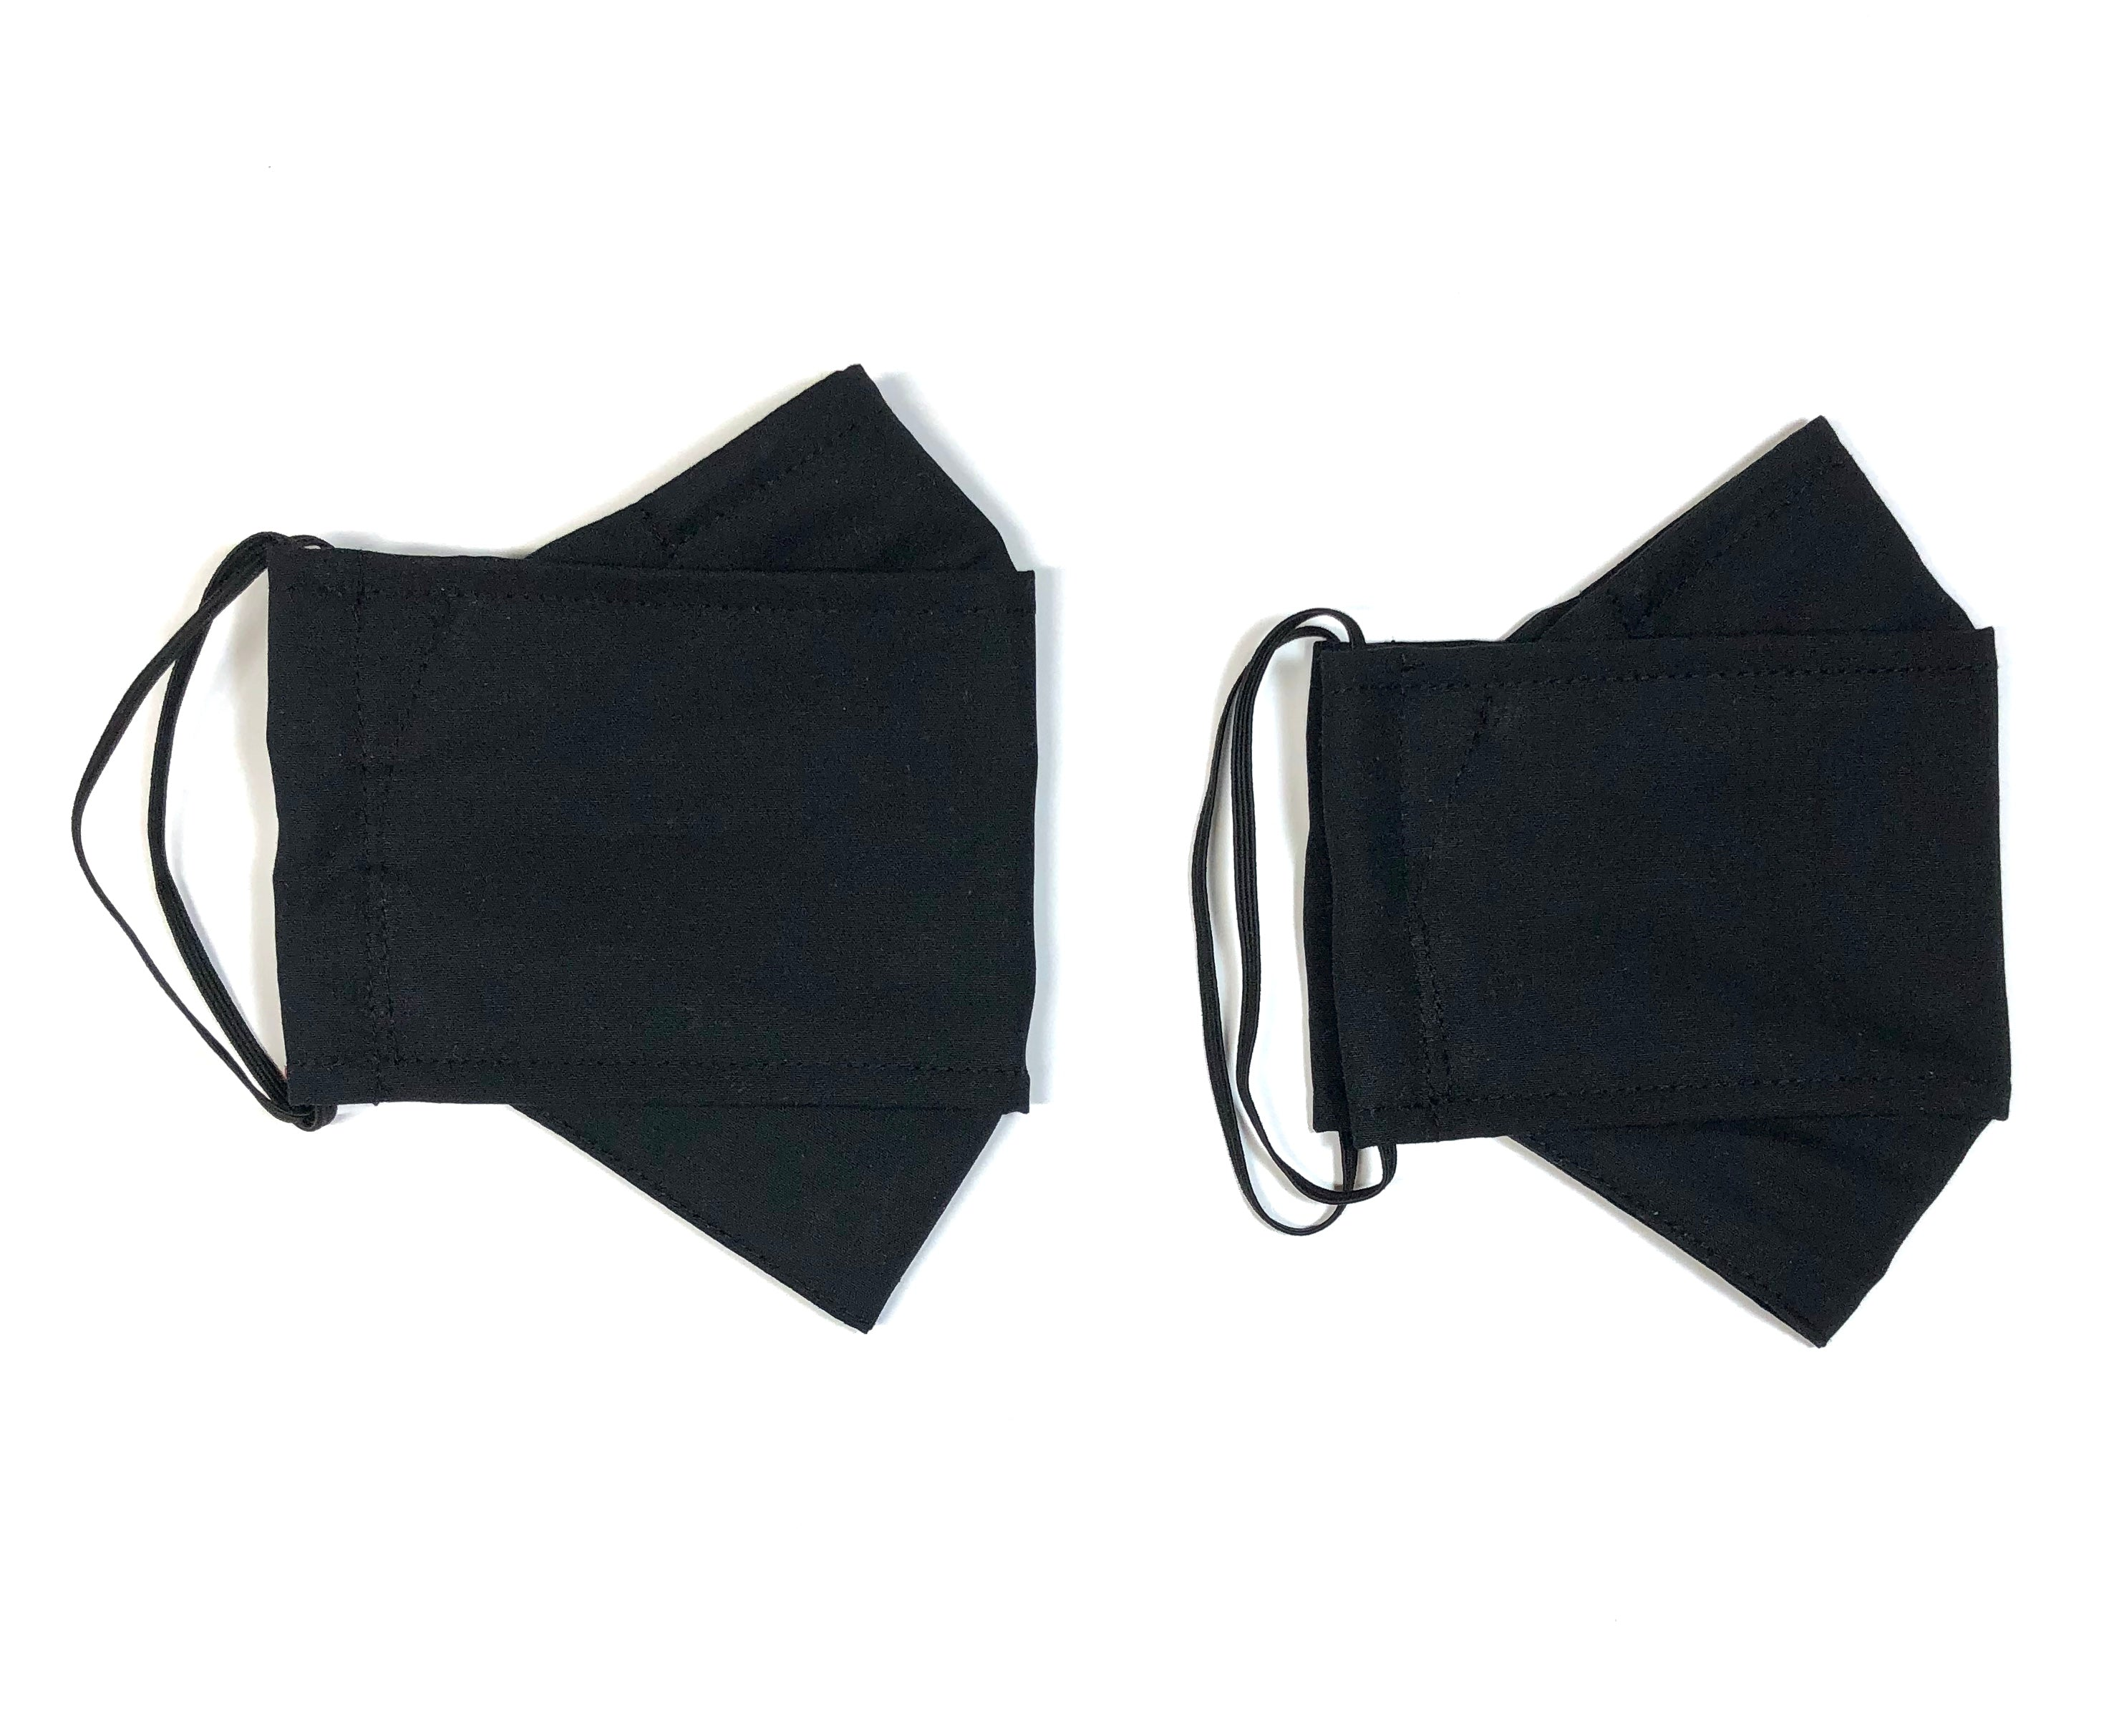 Black, Reusable Face Mask